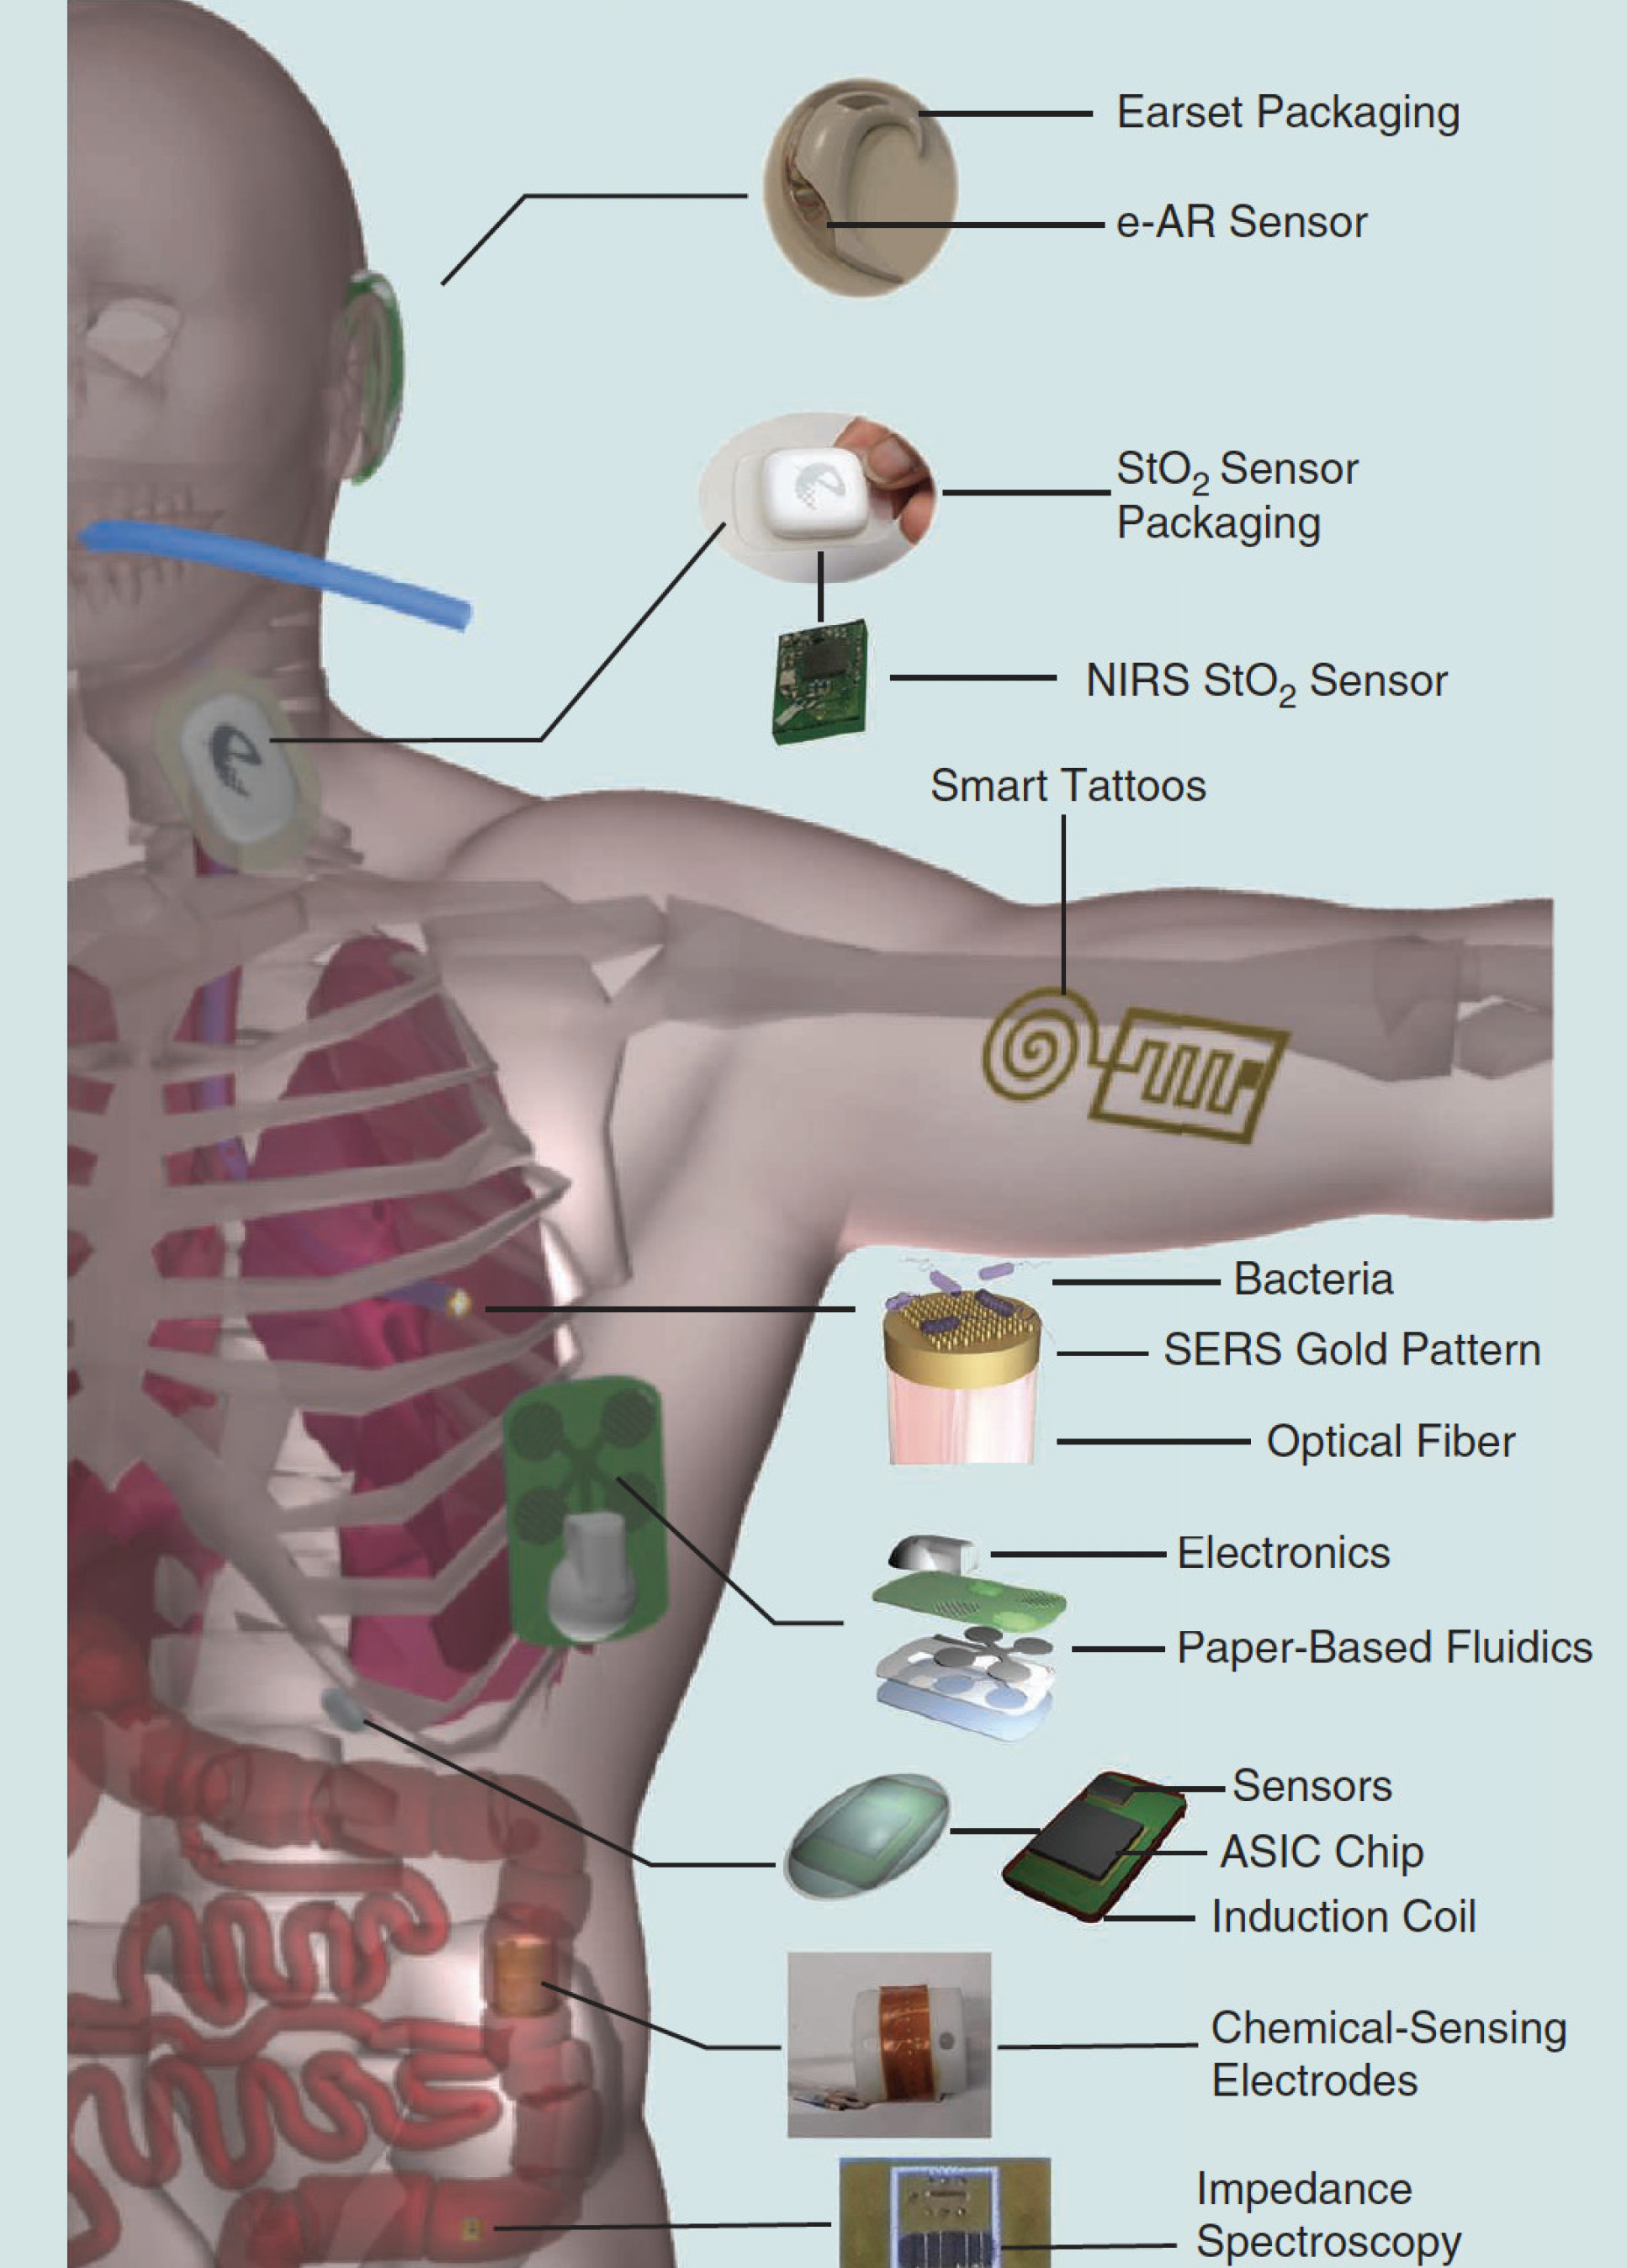 Tethered, wearable, and implantable devices and embodiments